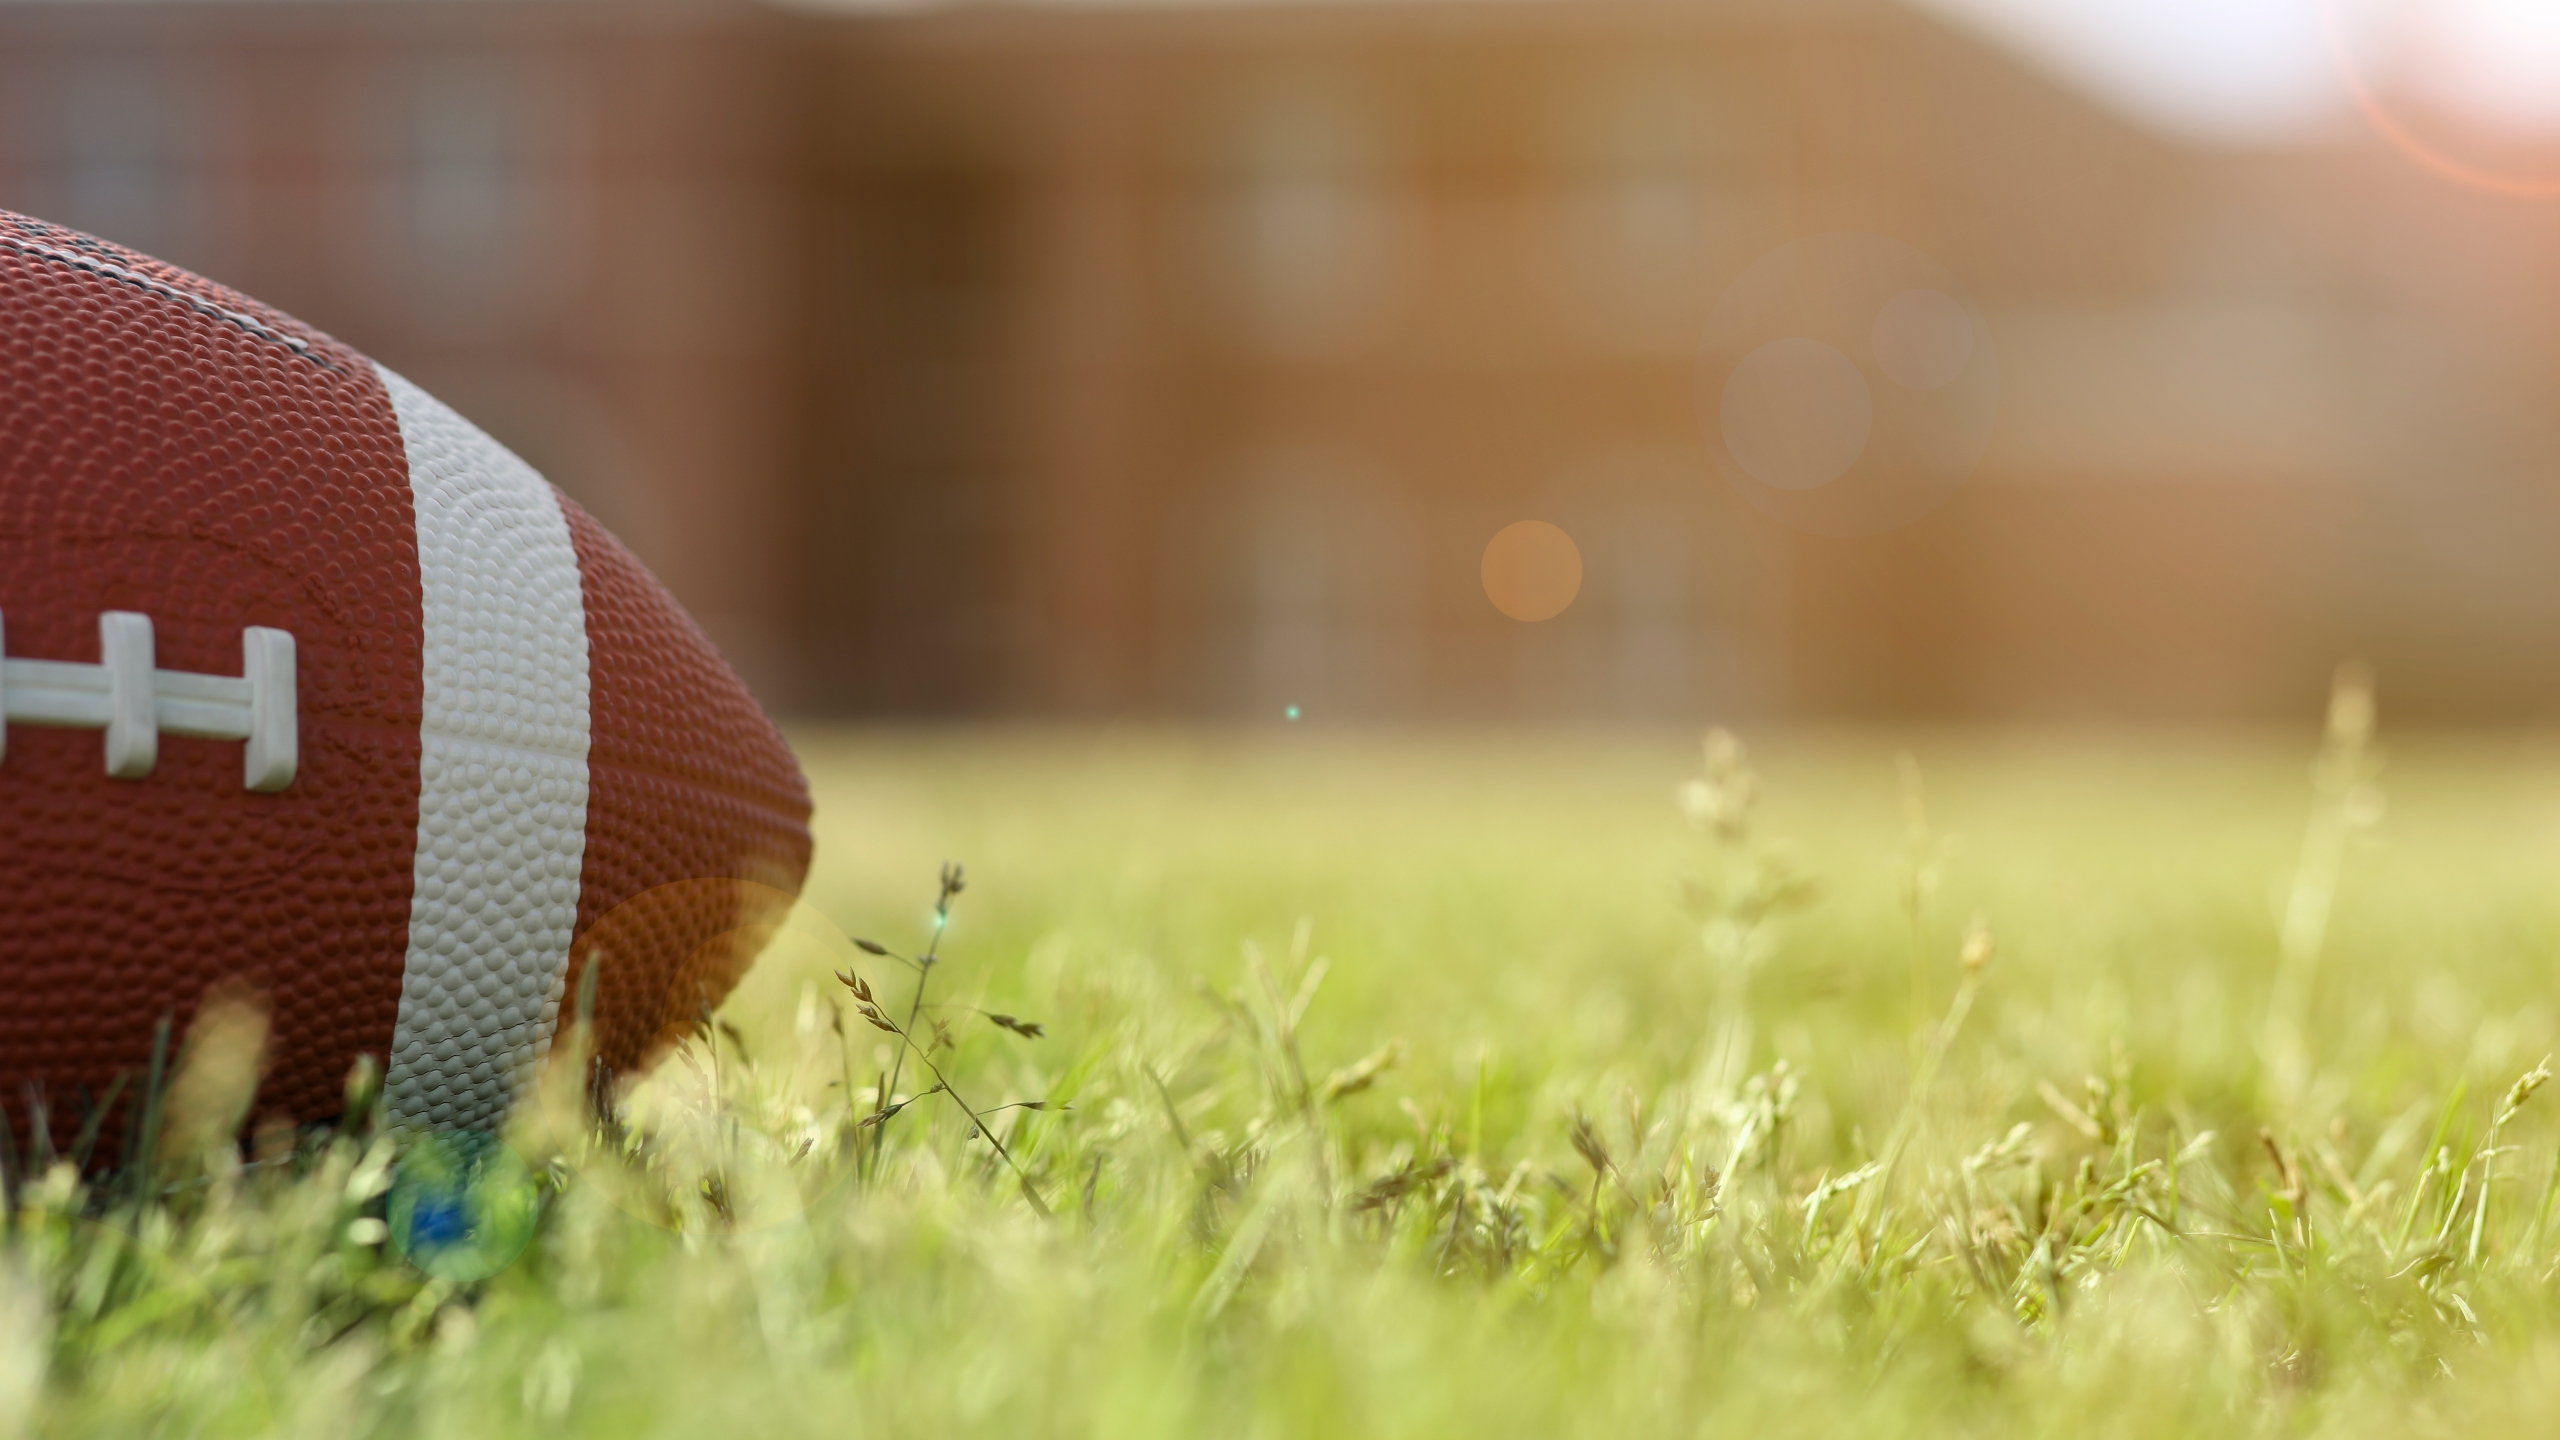 A file photo shows a football on grass. (Getty Images)